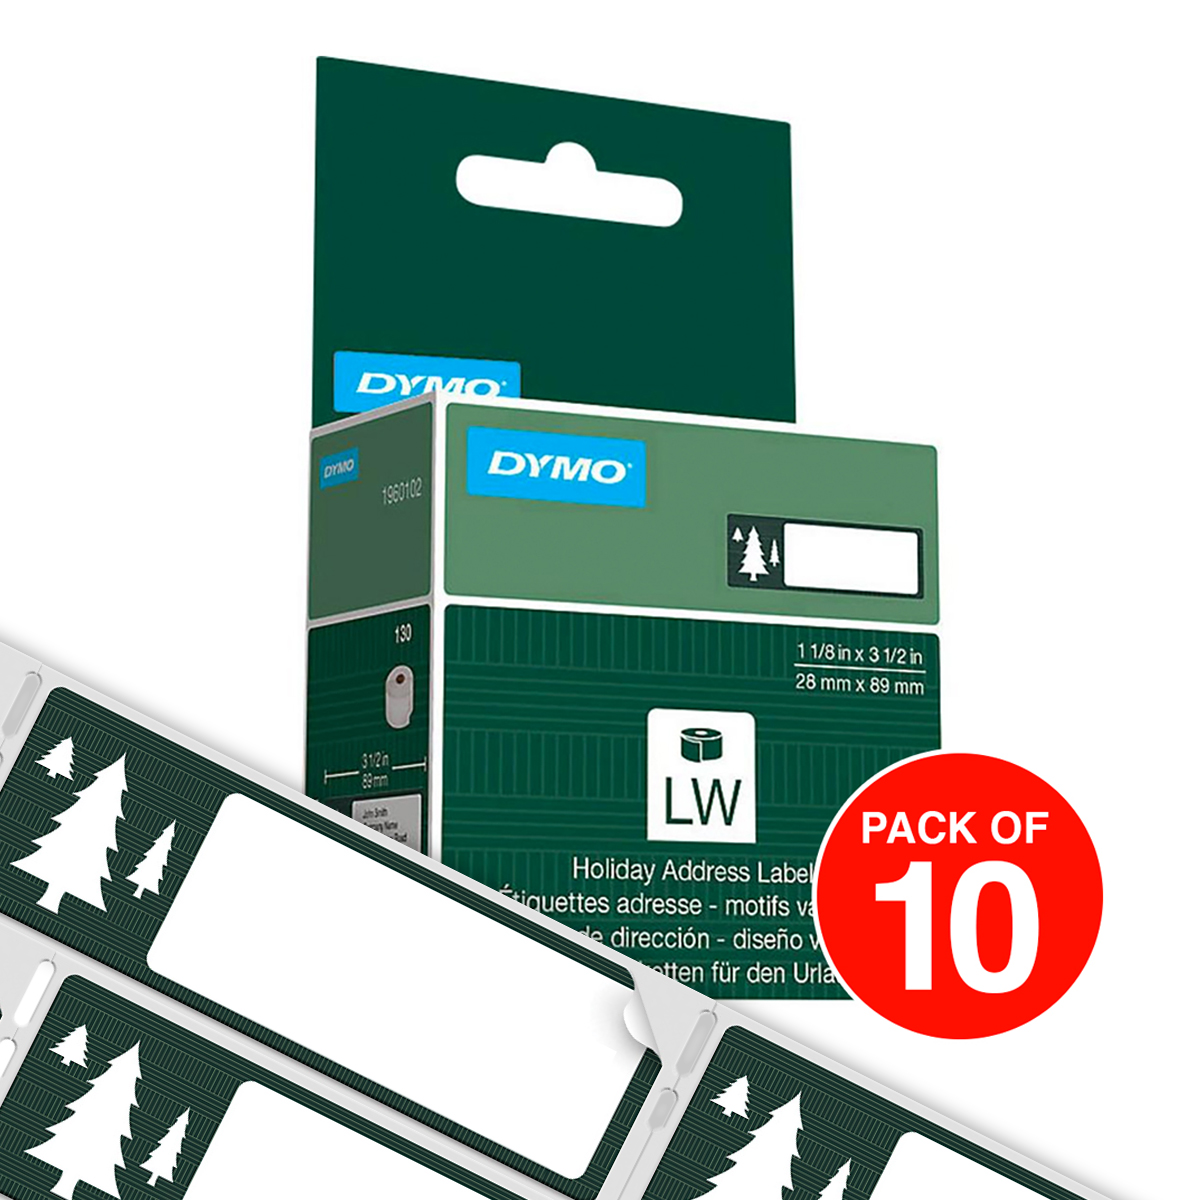 Dymo LabelWriter Tree Design Limited Edition 28 x 89mm Pack of 10